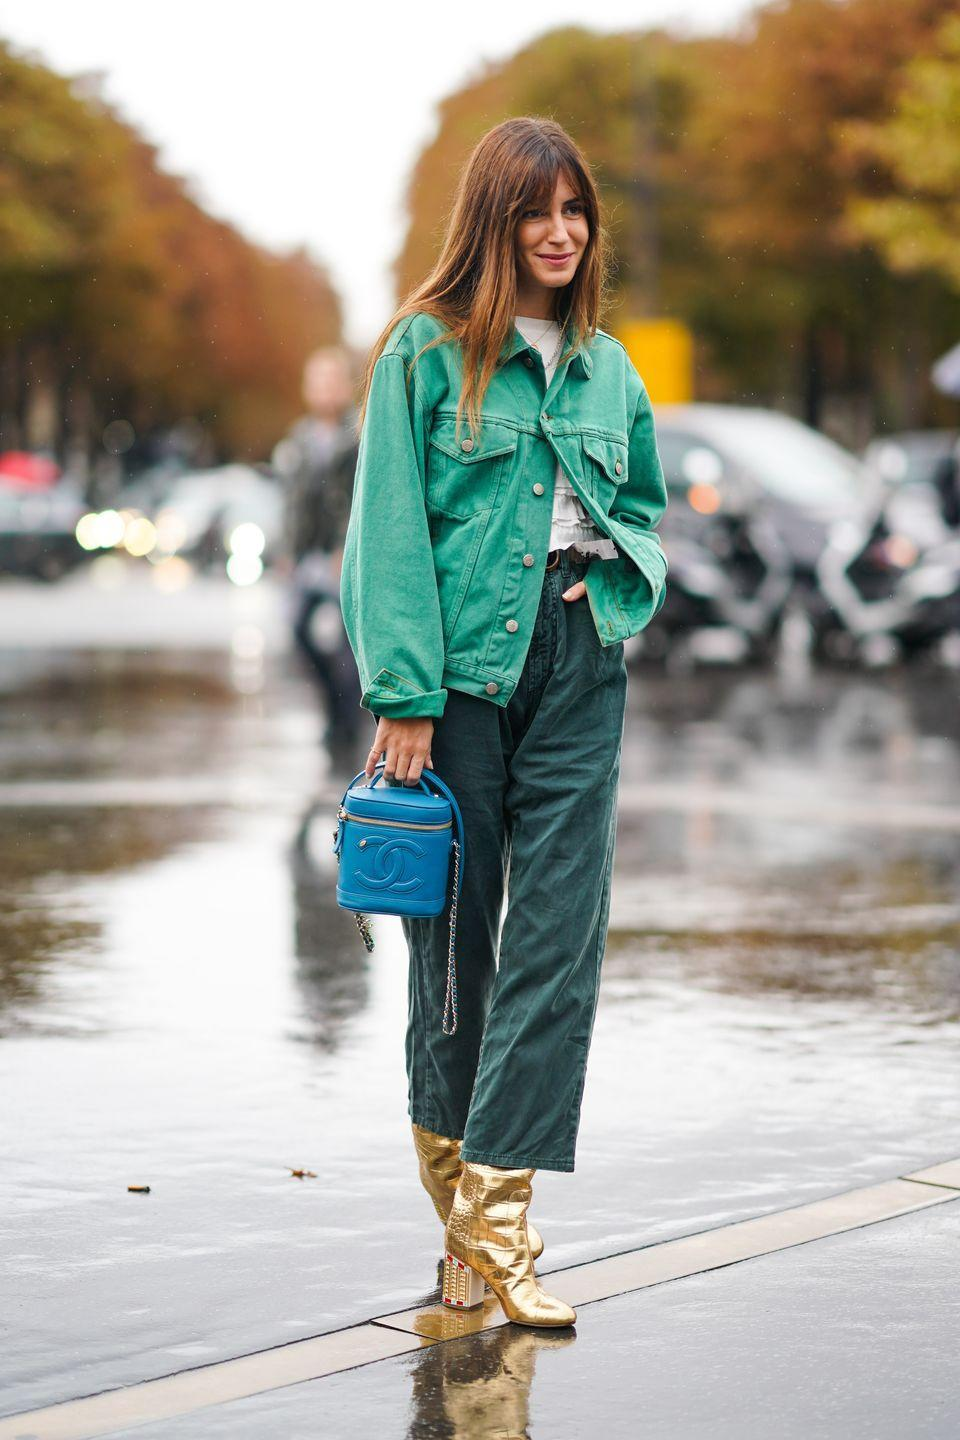 <p>Intensify your wardrobe's color palette by considering a green jean jacket as your newest addition. Any look that's monochrome is instantly chic, so add a dark-green pant to match.</p>